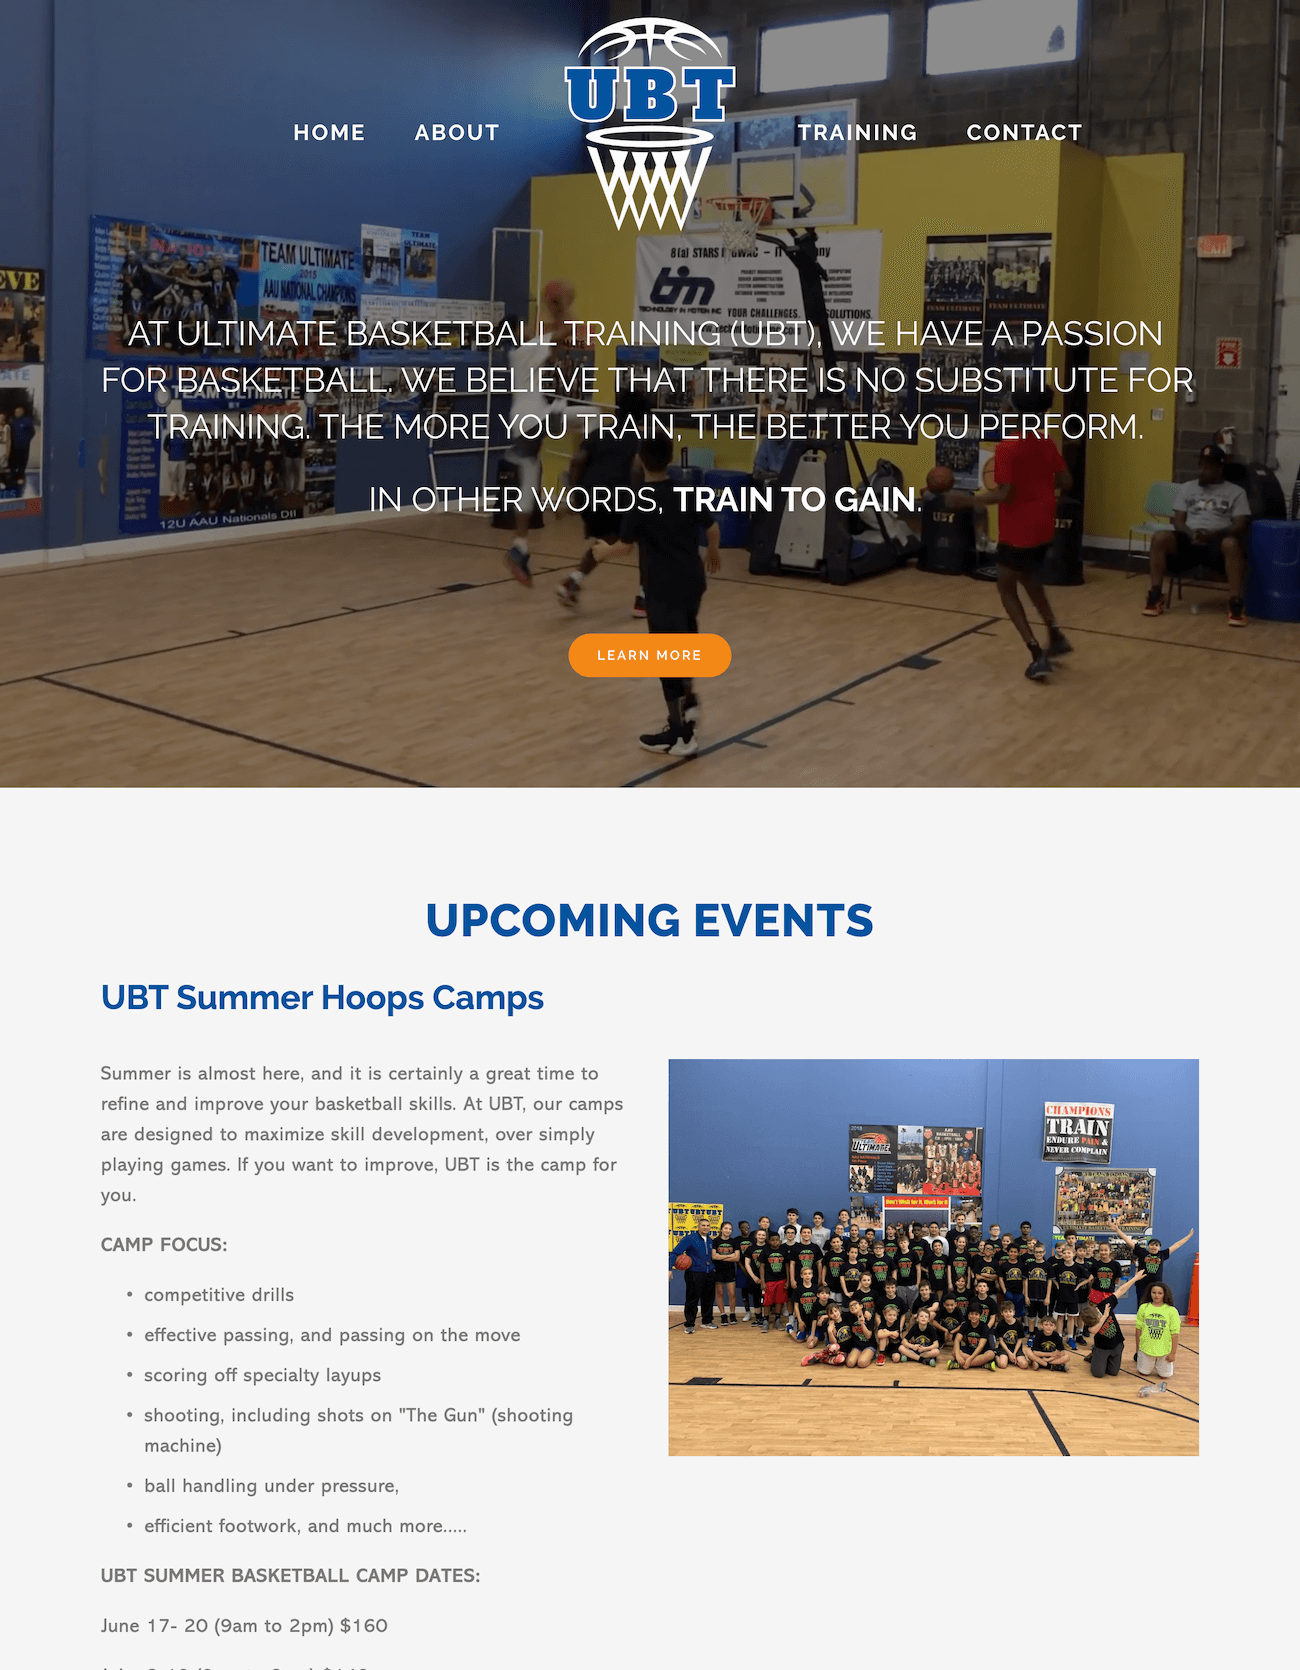 new-ultimatebasketball-training-cropped.png